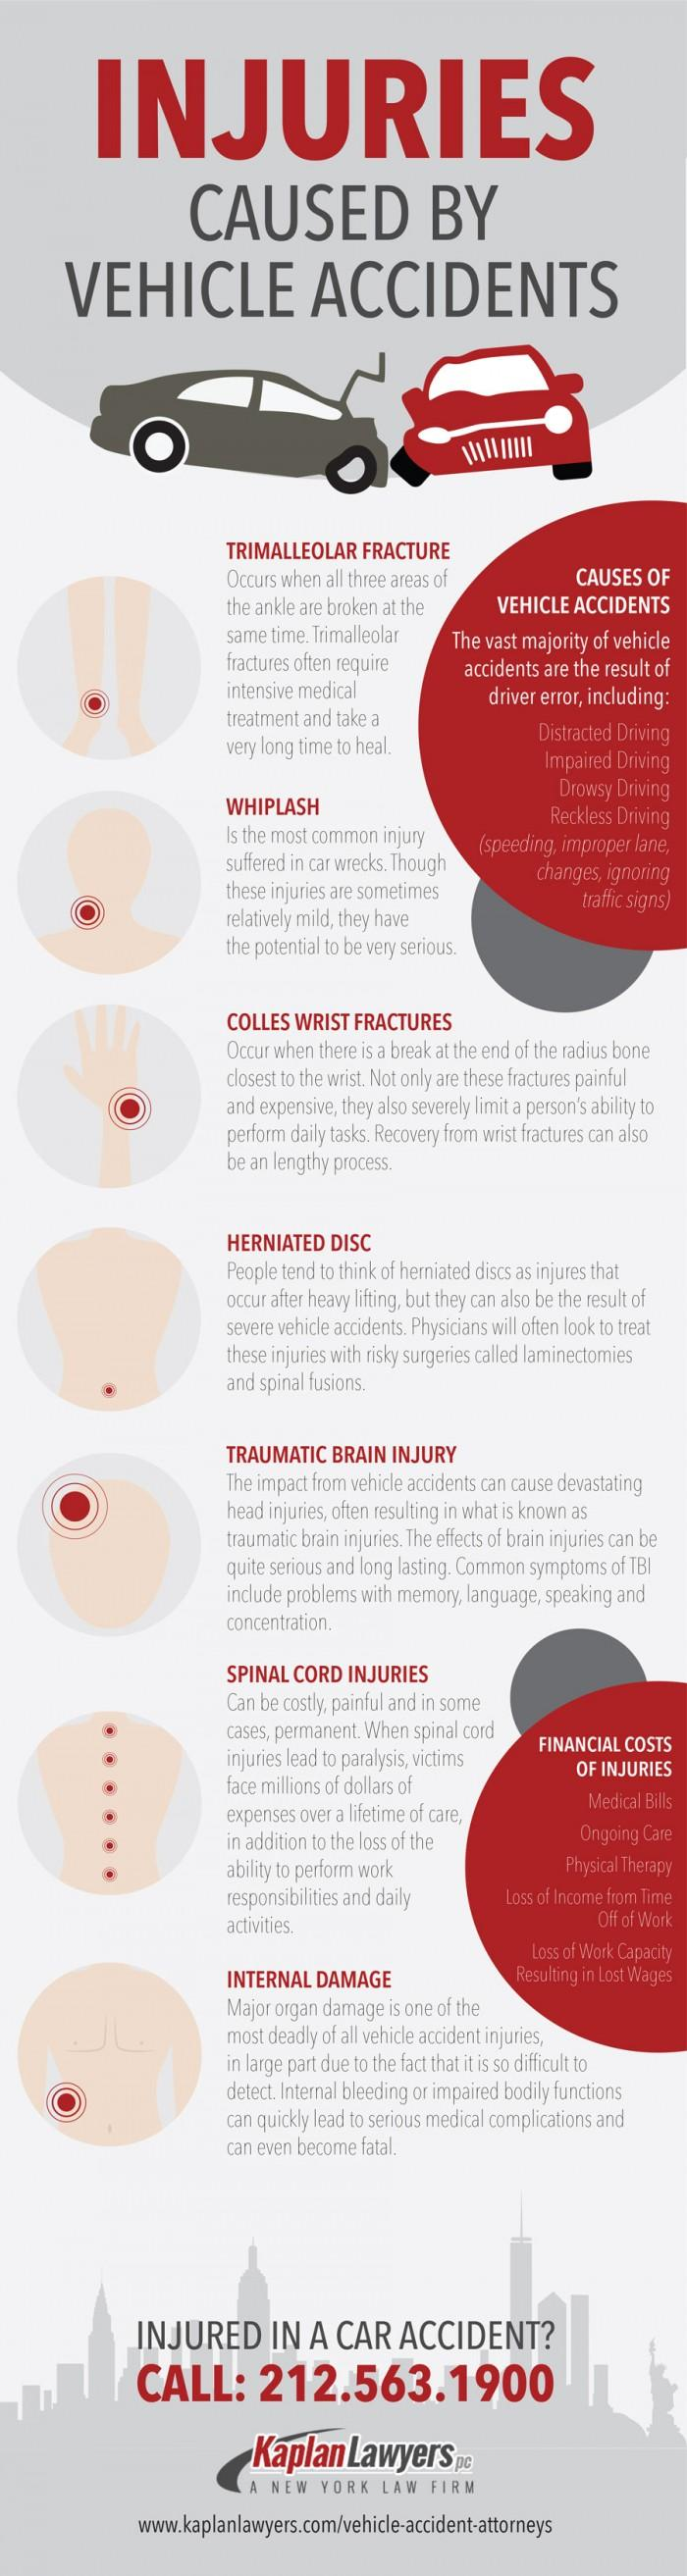 injuries-caused-by-vehicle-accidents